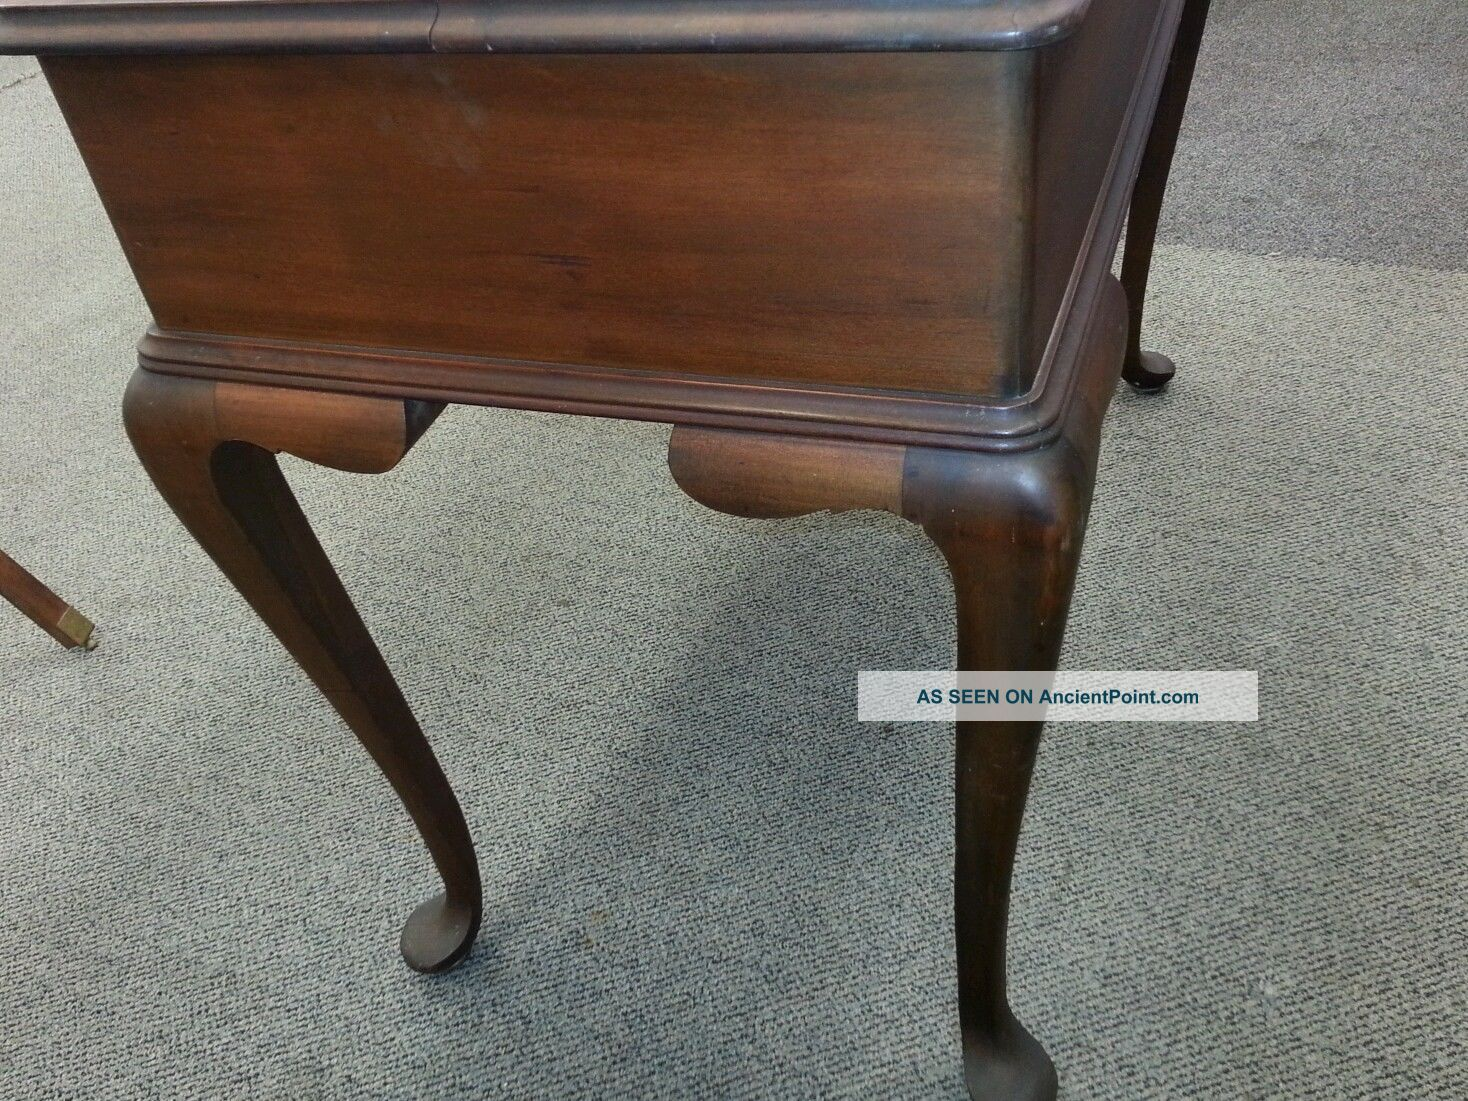 Marvelous photograph of  Queen Anne Style Flip Top Cabriole Leg Writing Desk 1800 1899 photo 5 with #603E2C color and 1468x1101 pixels